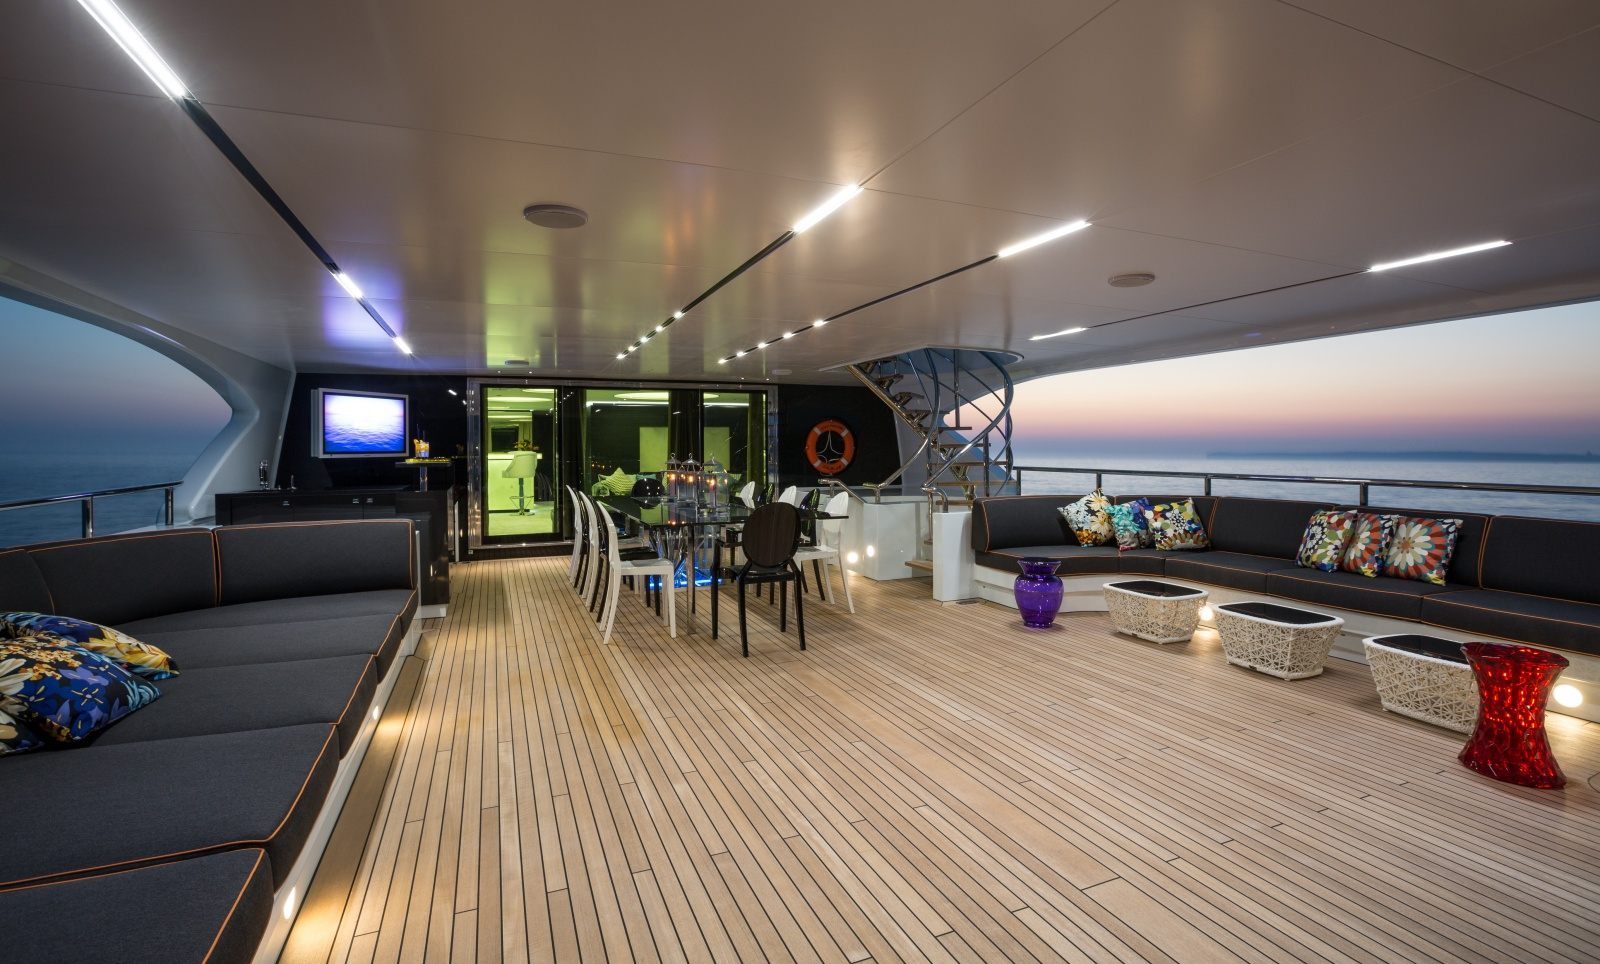 Take A Look Inside The Largest Boat At The Cannes Yachting